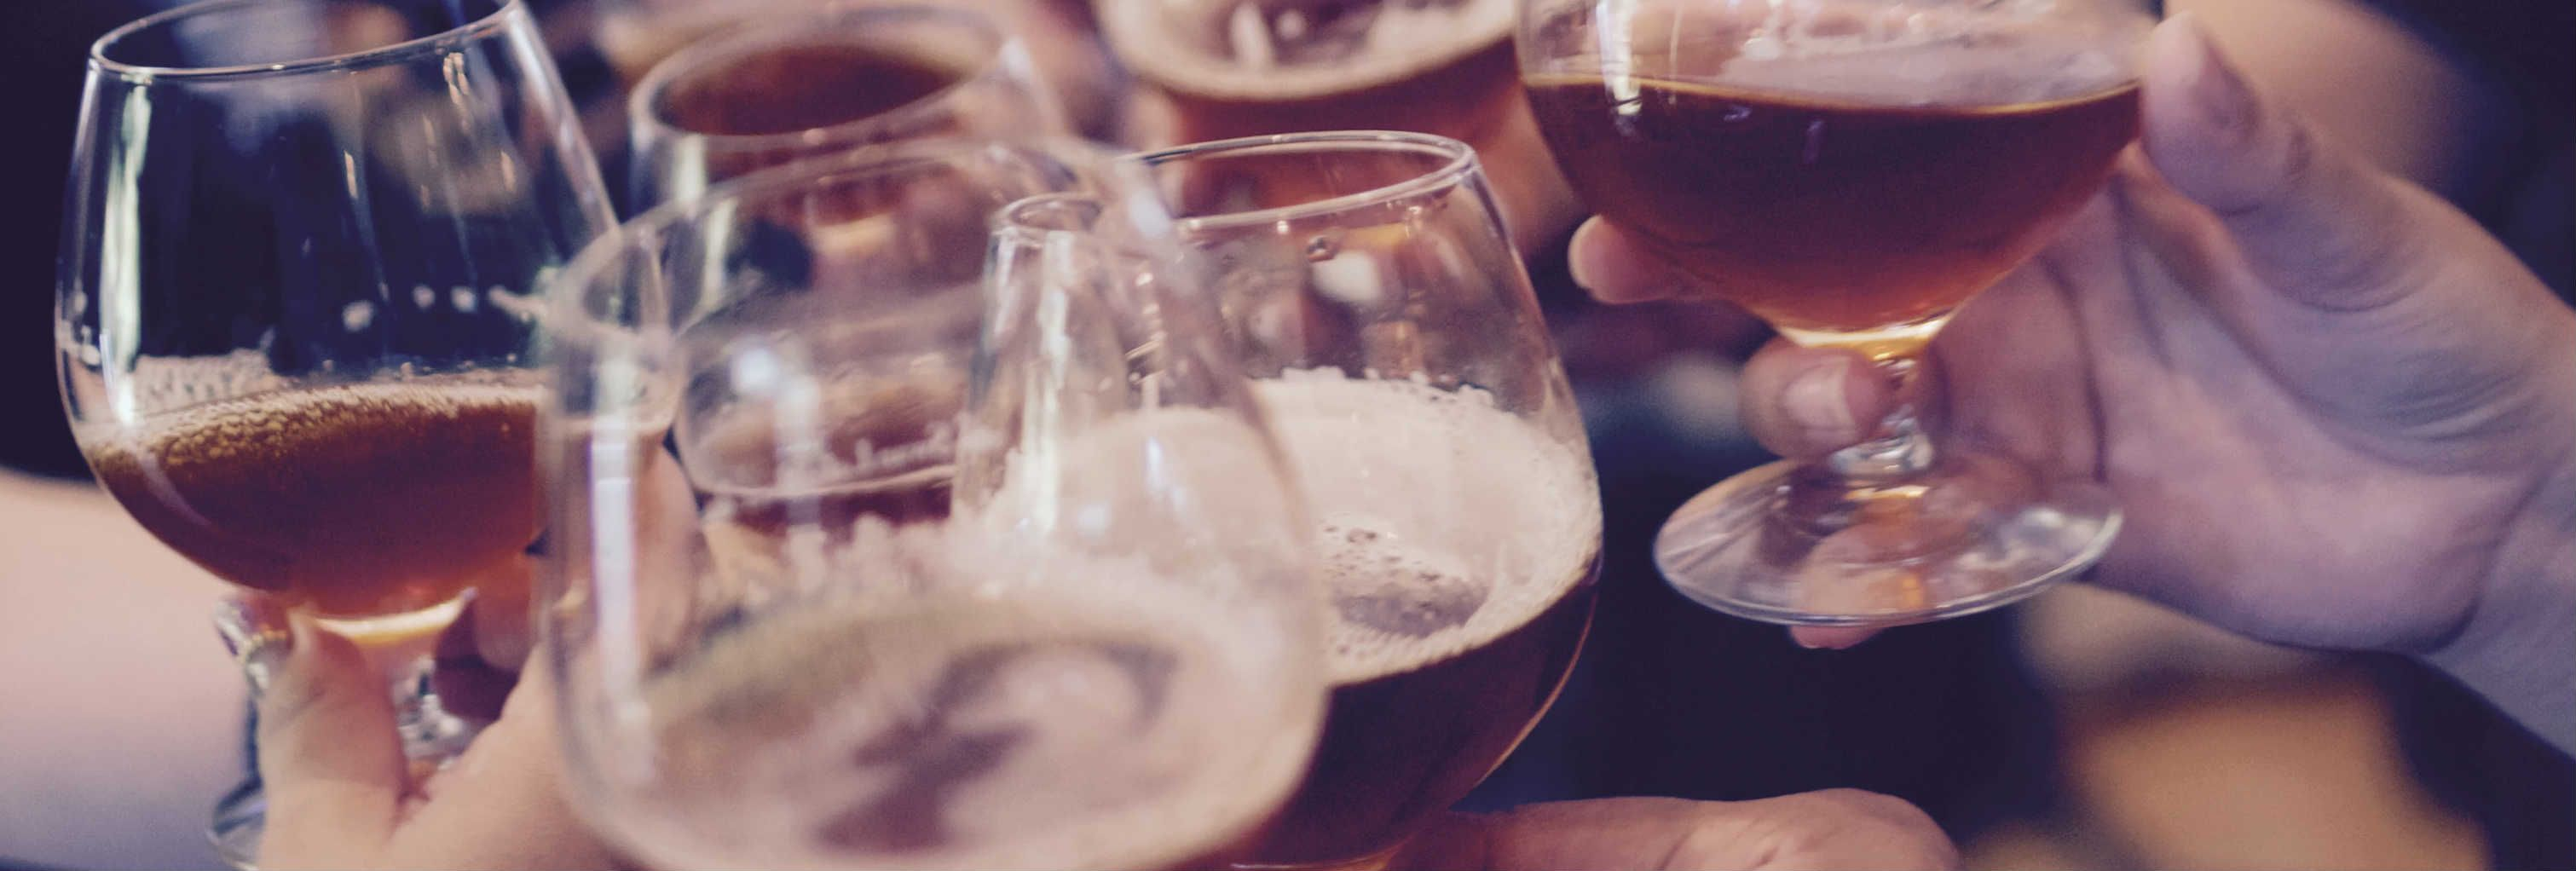 close up of people holding glasses of beer